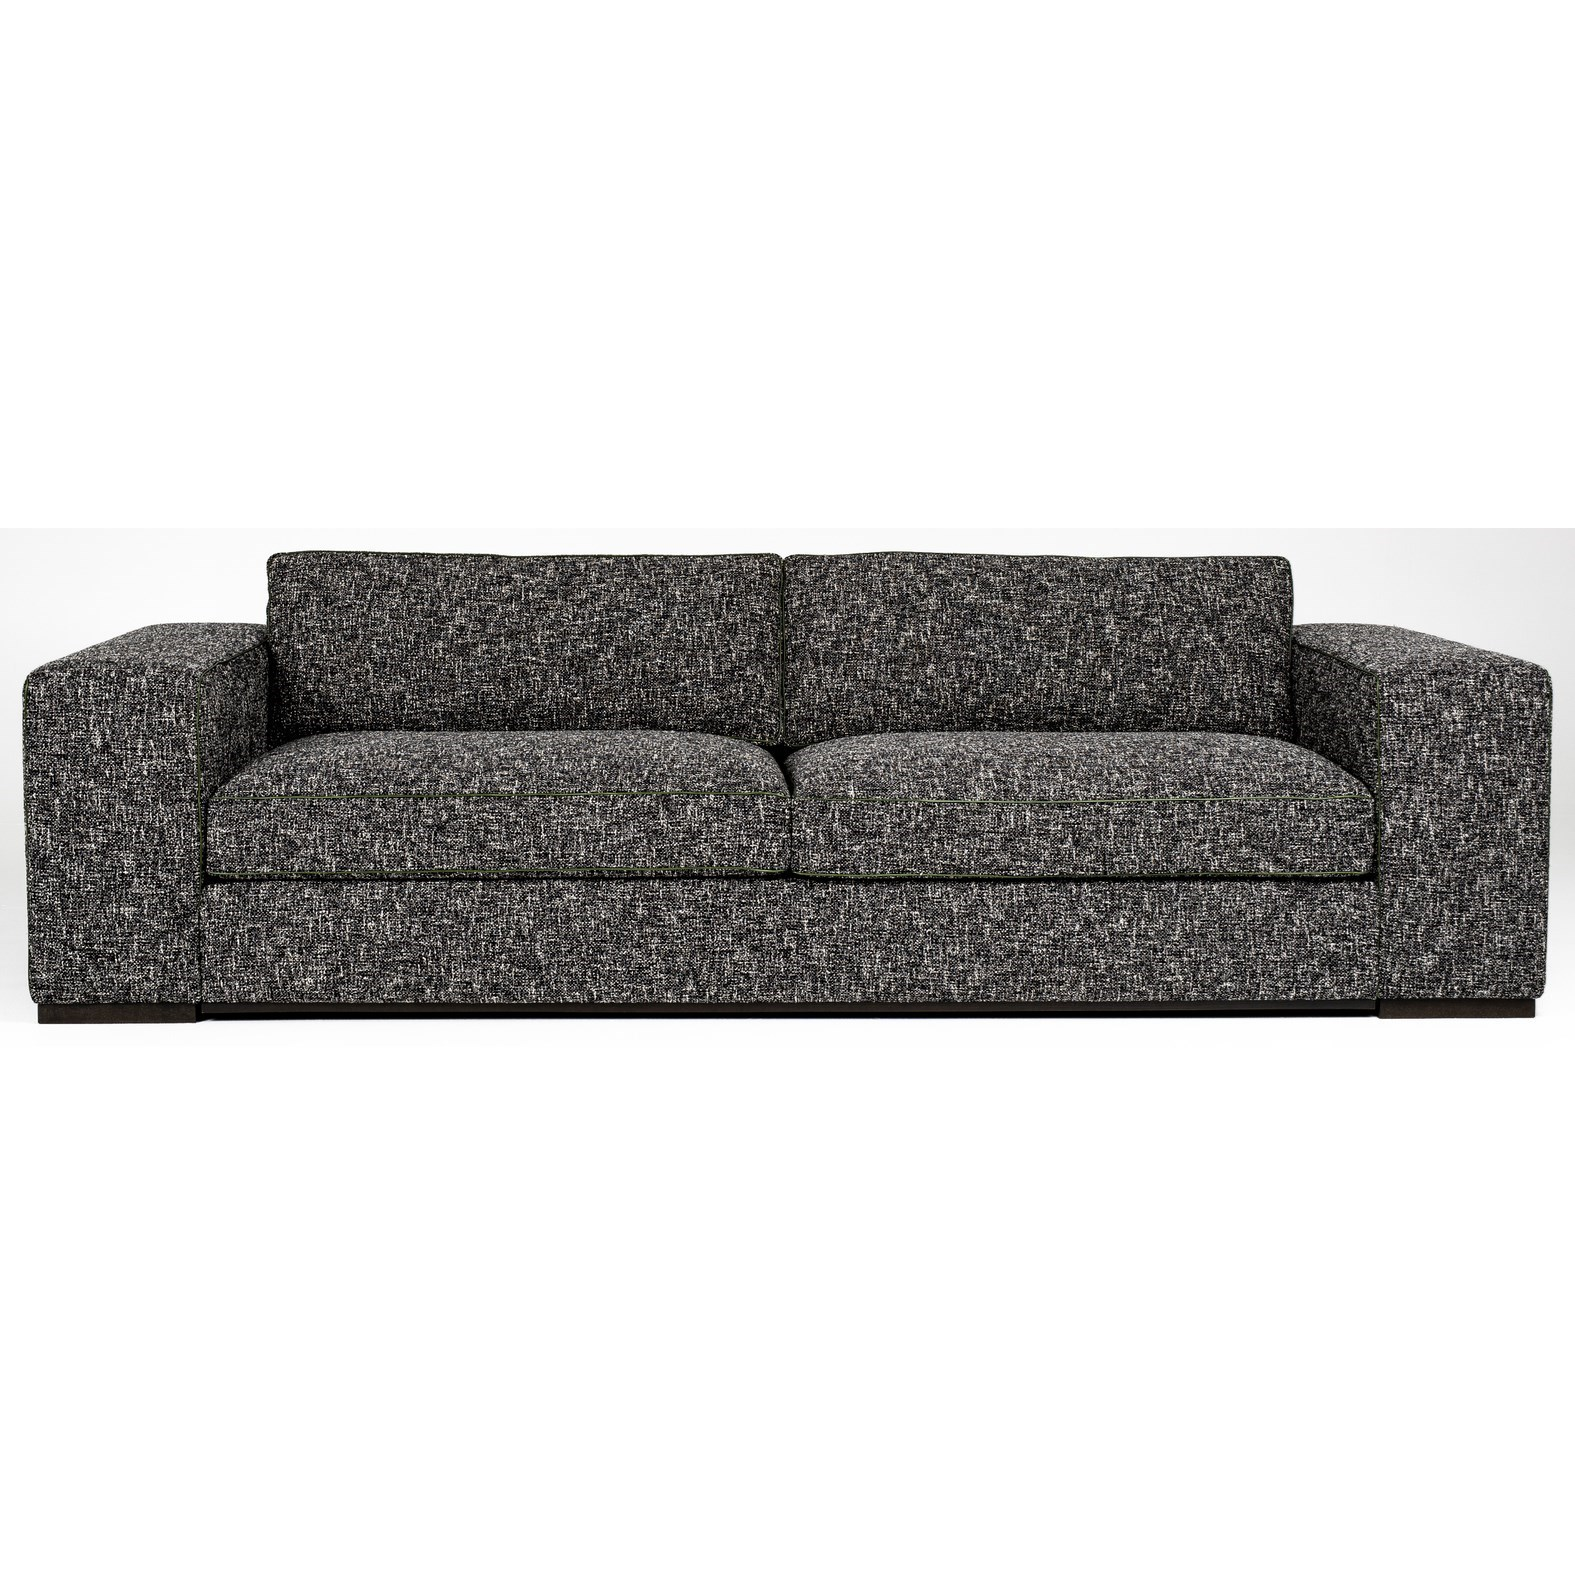 Ellis 2-Seat Sofa by American Leather at Sprintz Furniture